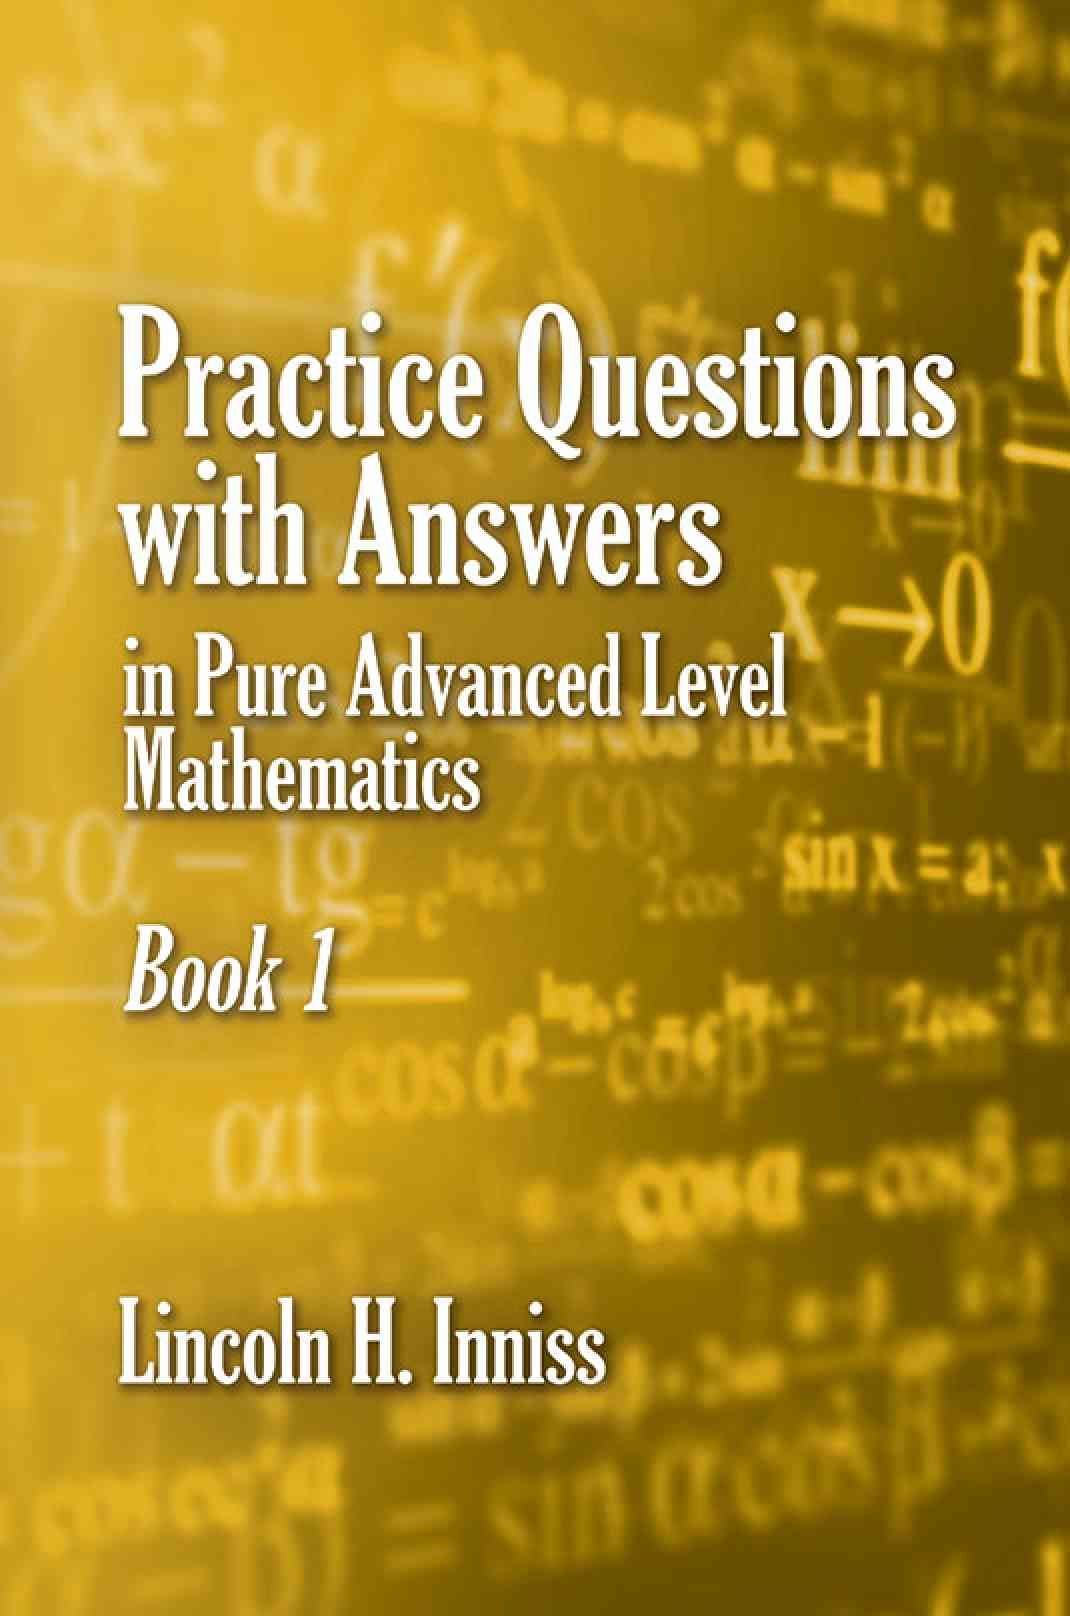 Practice Questions with answers in Pure Advanced Level Mathematics Book 1 | Book| Austin ...